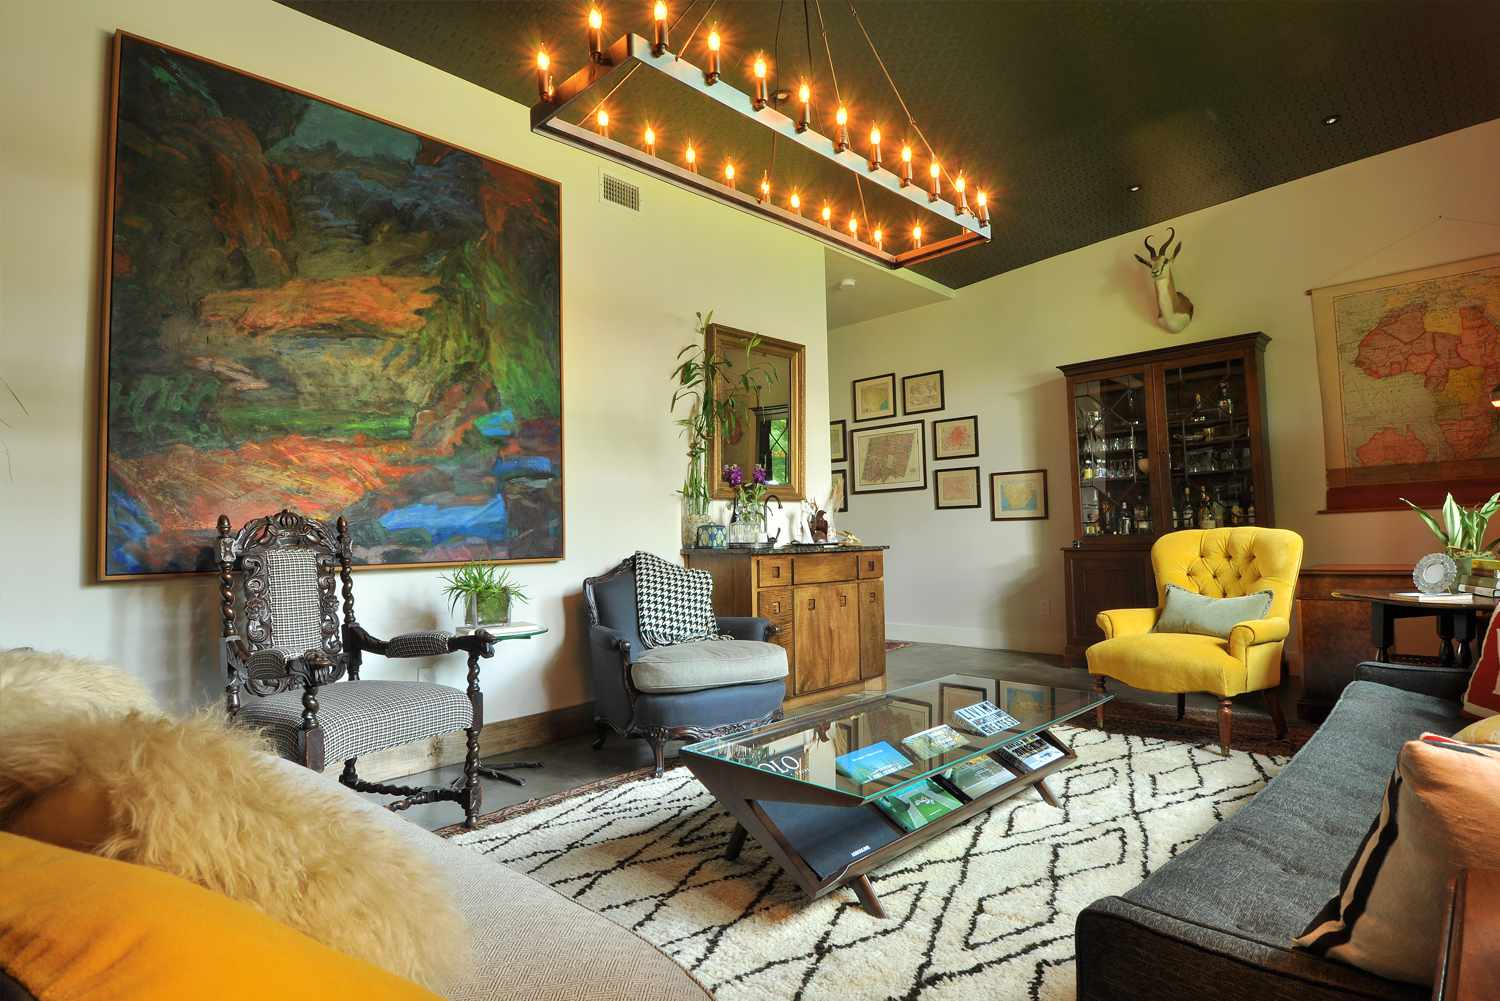 eclectic traditional decor